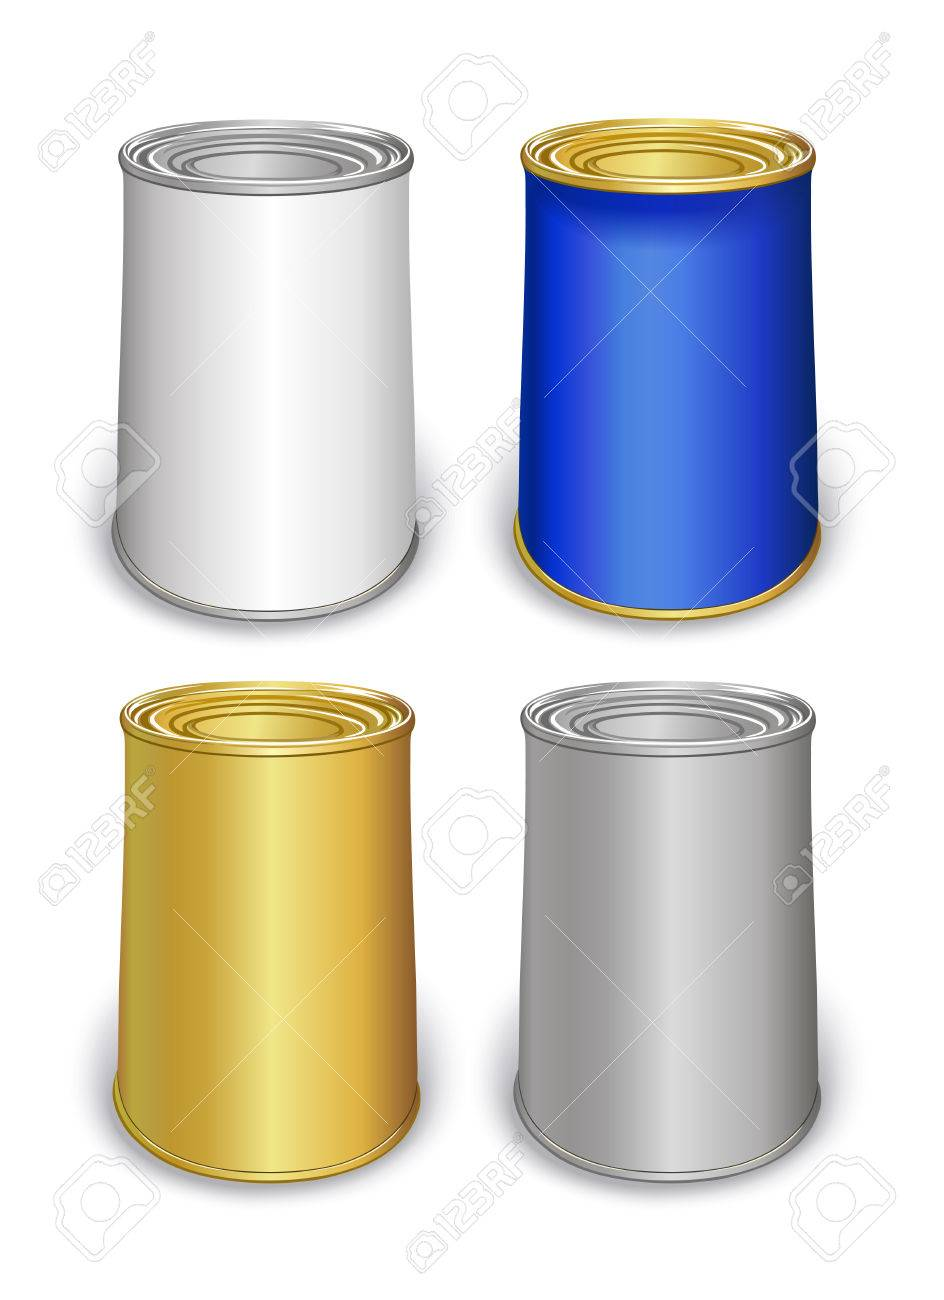 Colored tin can templates isolated on white background created colored tin can templates isolated on white background created in illustrator image contains transparencies maxwellsz